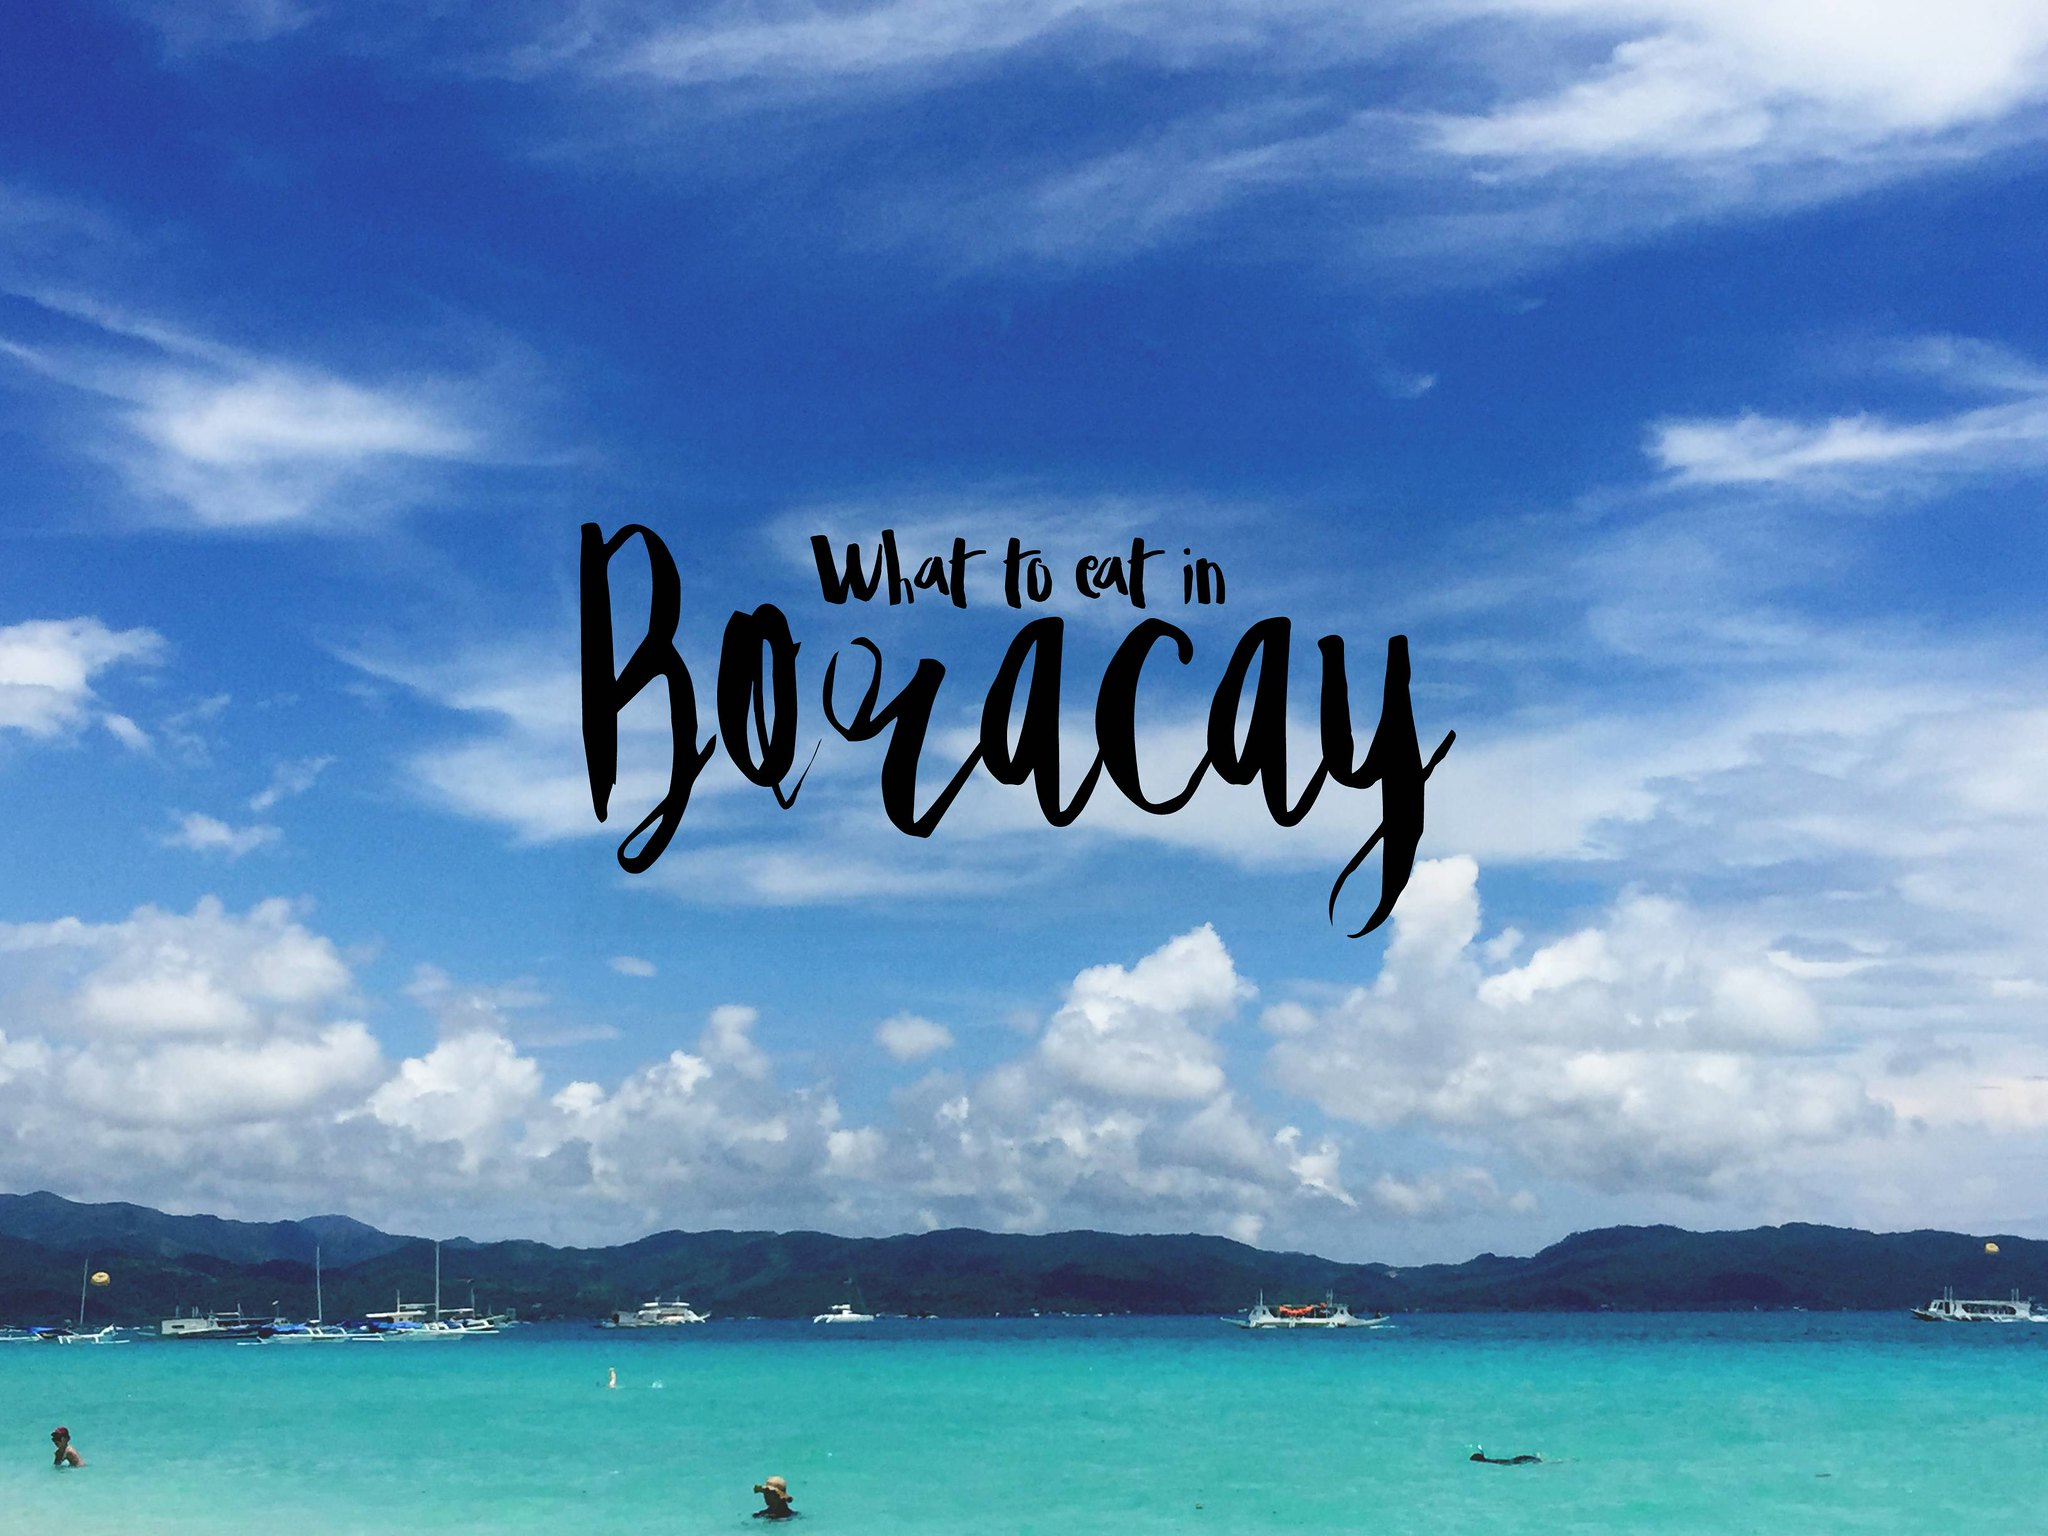 What to eat in Boracay